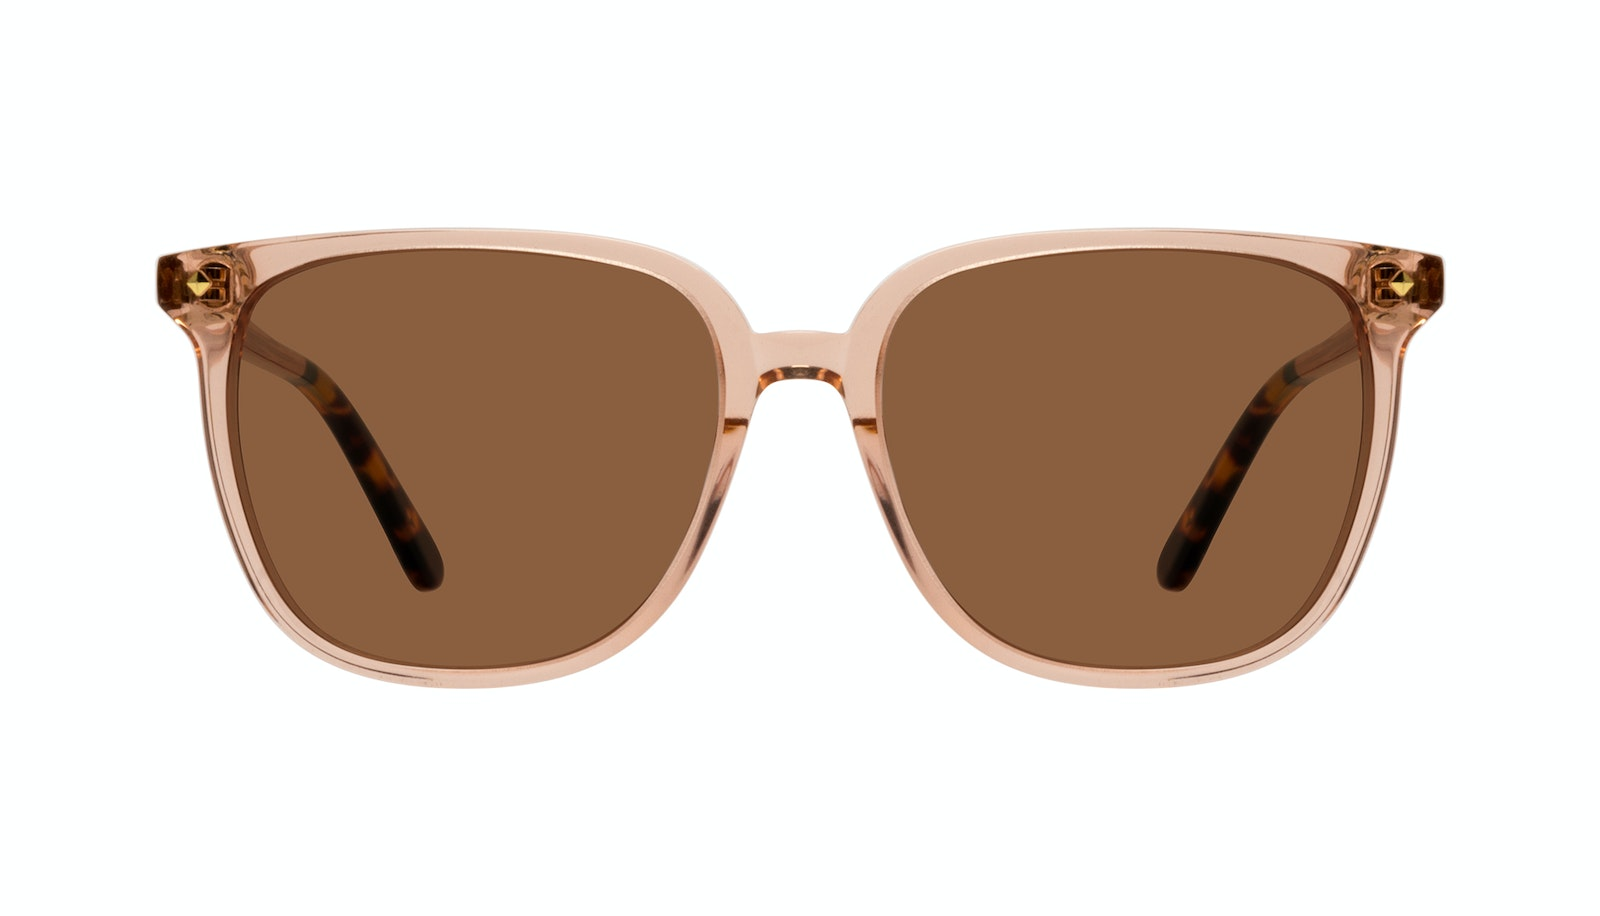 Affordable Fashion Glasses Sunglasses Women Gia Peach